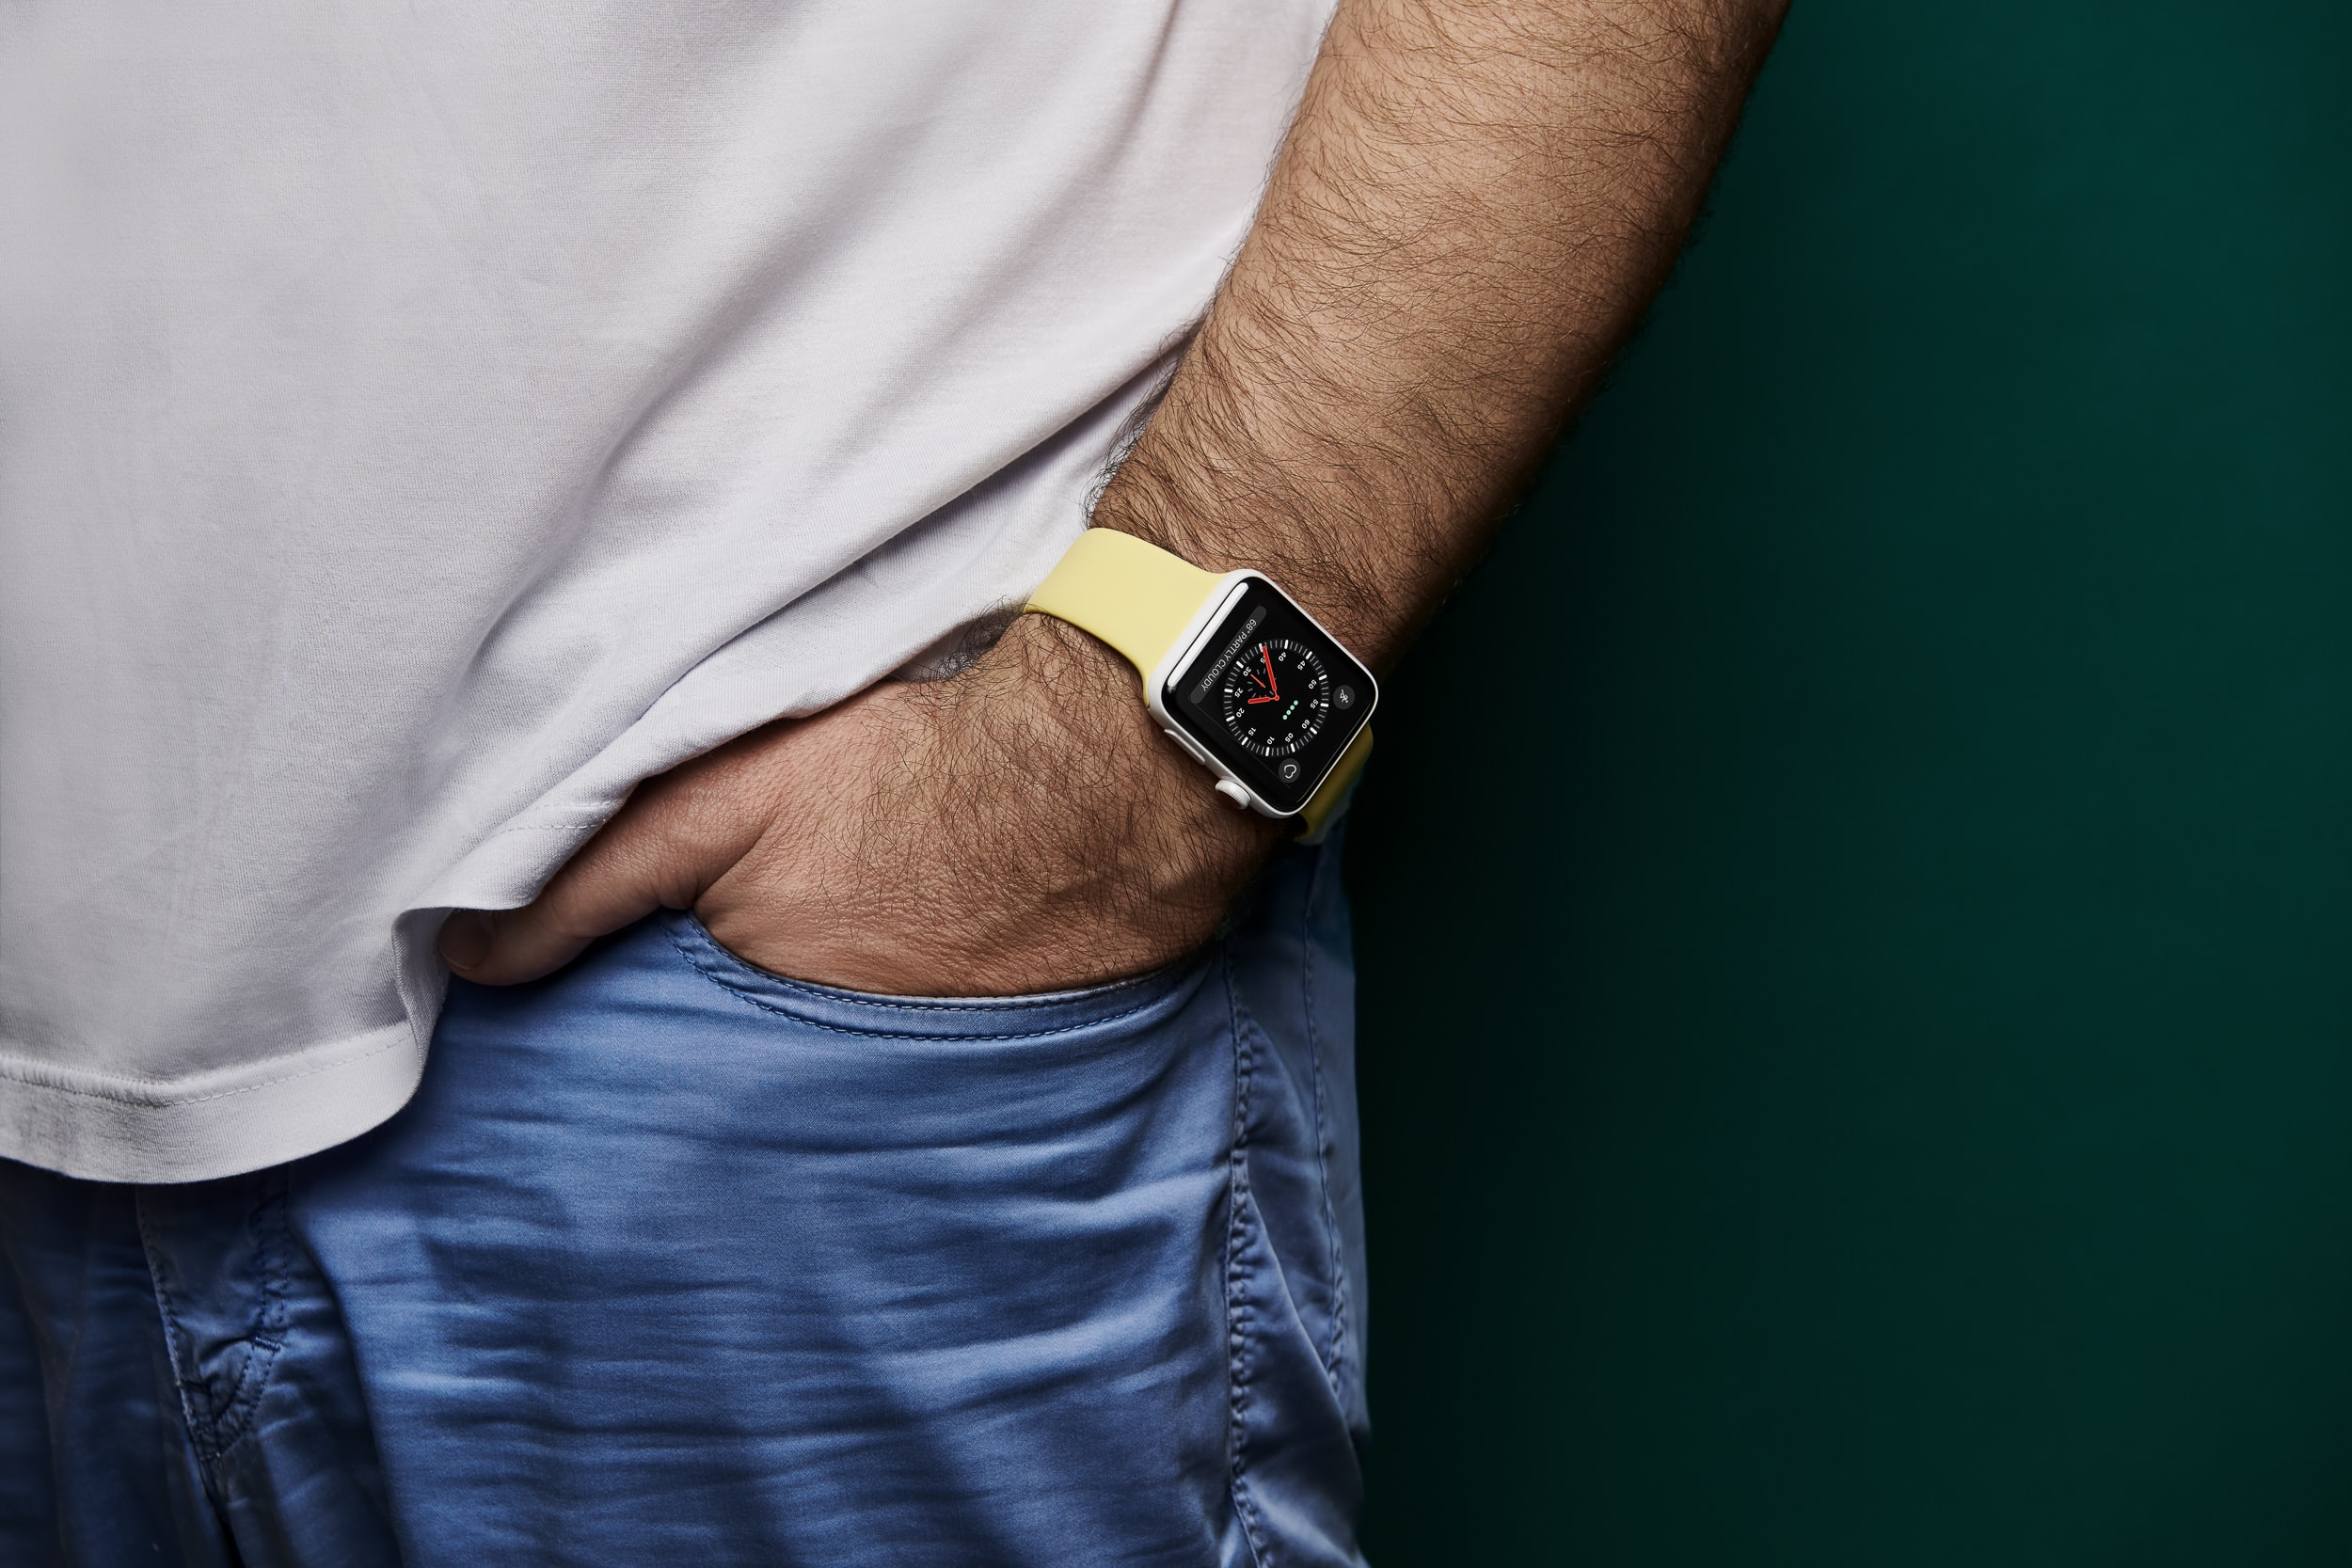 Editorial: Five Things I Learned About Apple Chief Design Officer Jony Ive As A Watch Collector While Interviewing Him For The HODINKEE Magazine